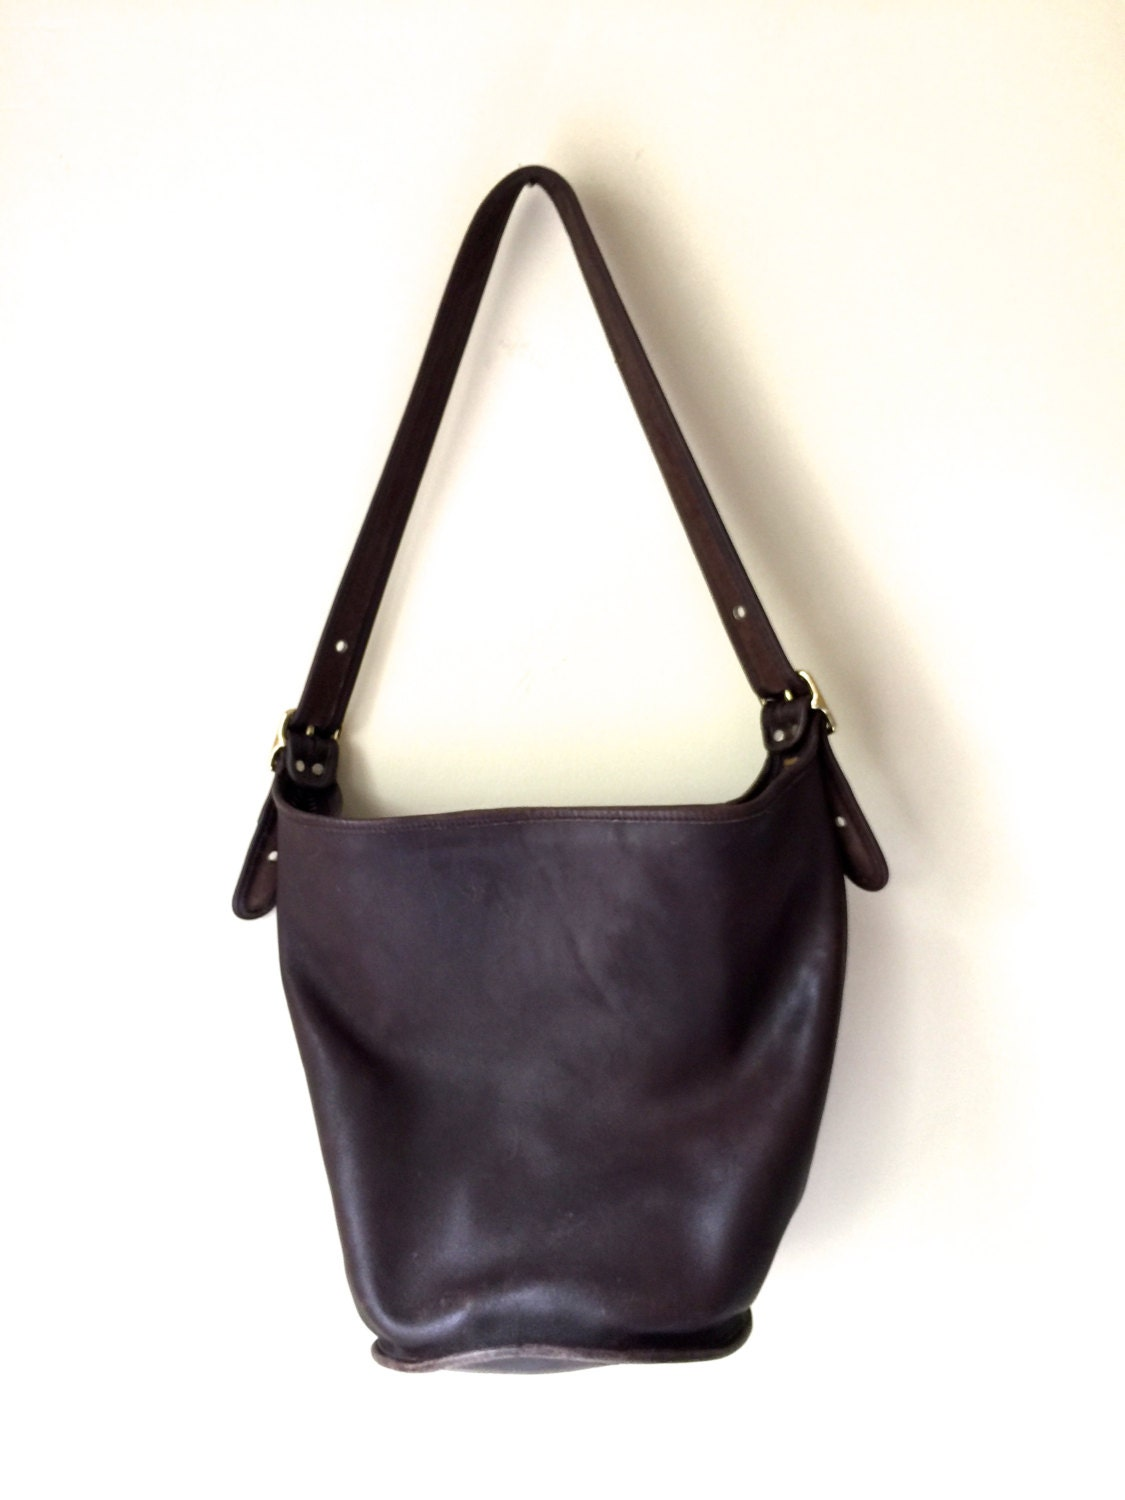 148652cf37ff Vintage Dark Brown Leather Coach Purse | Stanford Center for ...